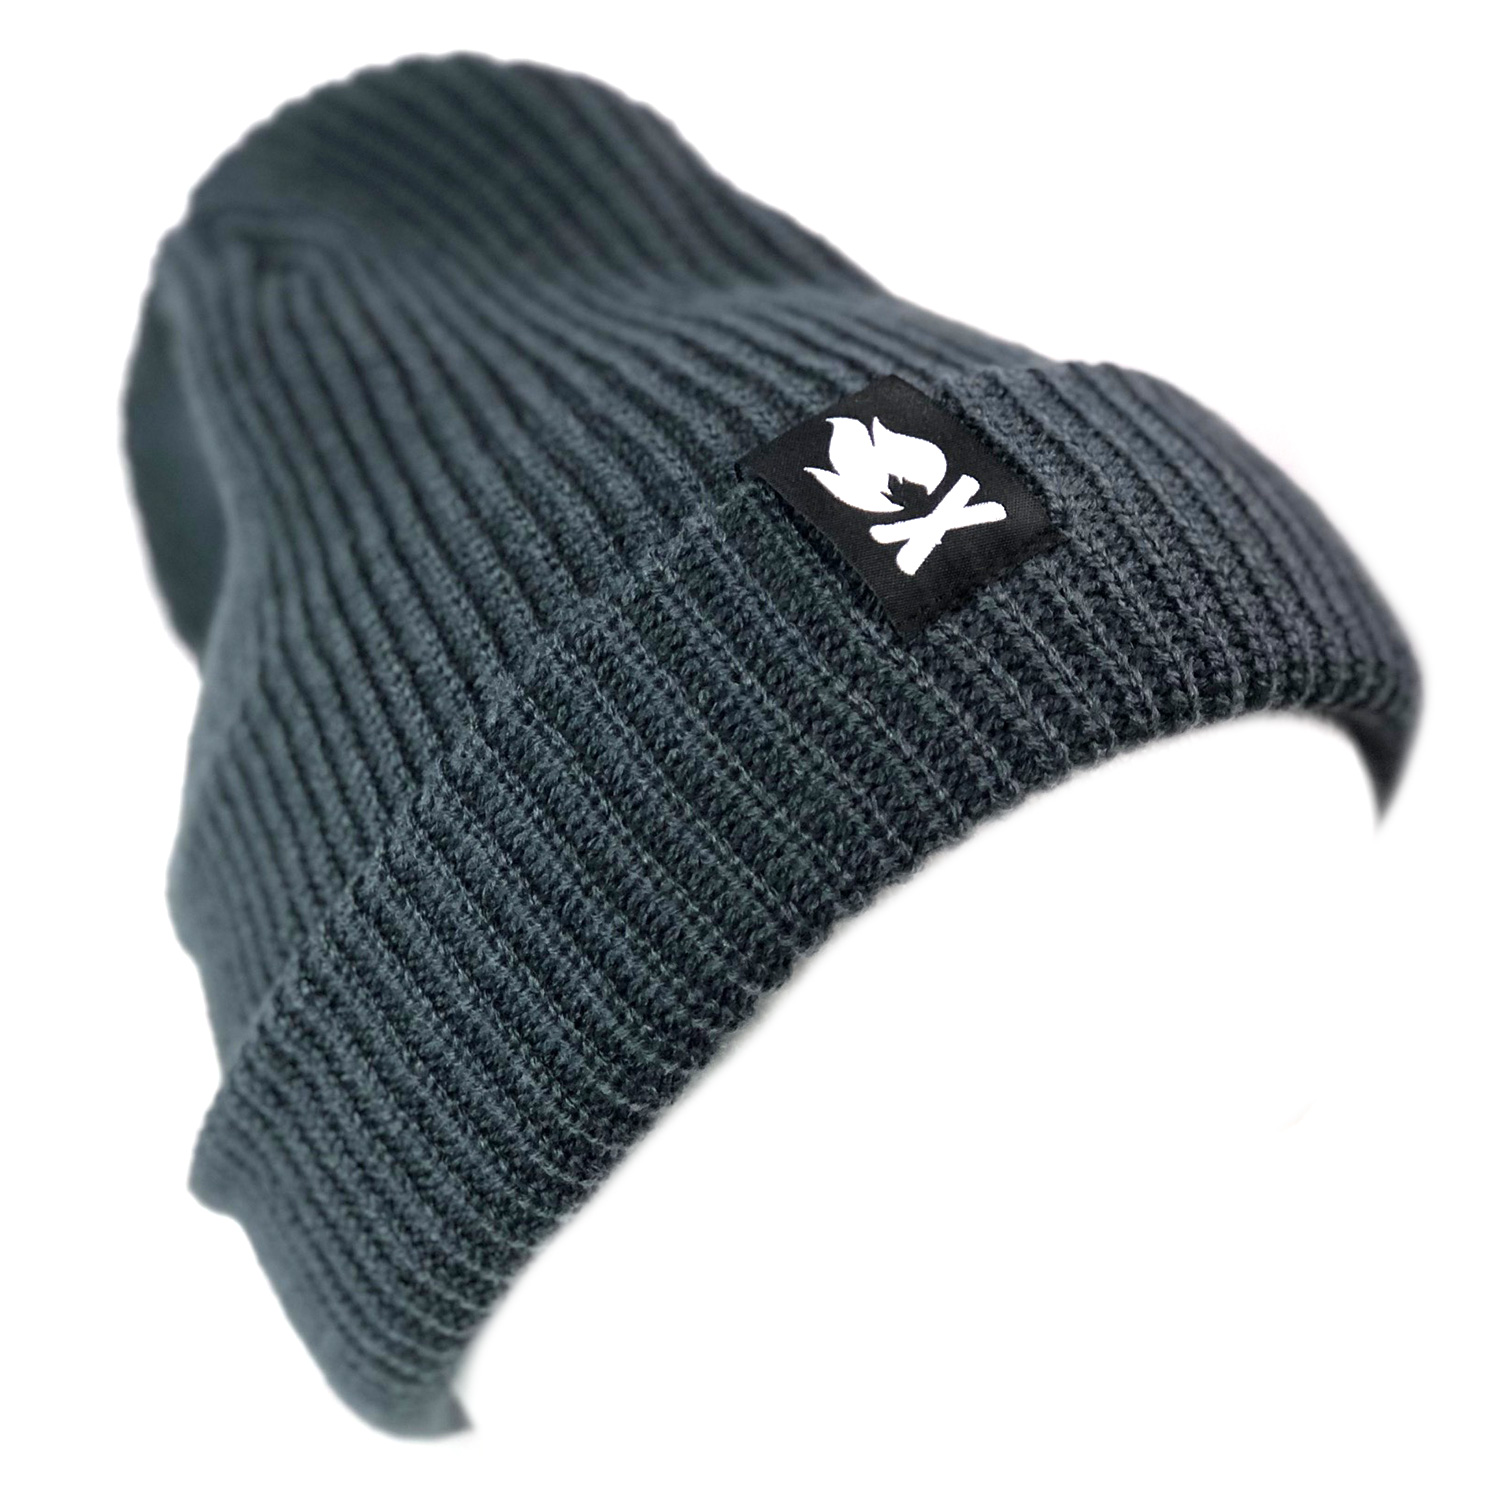 2019_02.05_Beanies_Campfire_Grey_Front